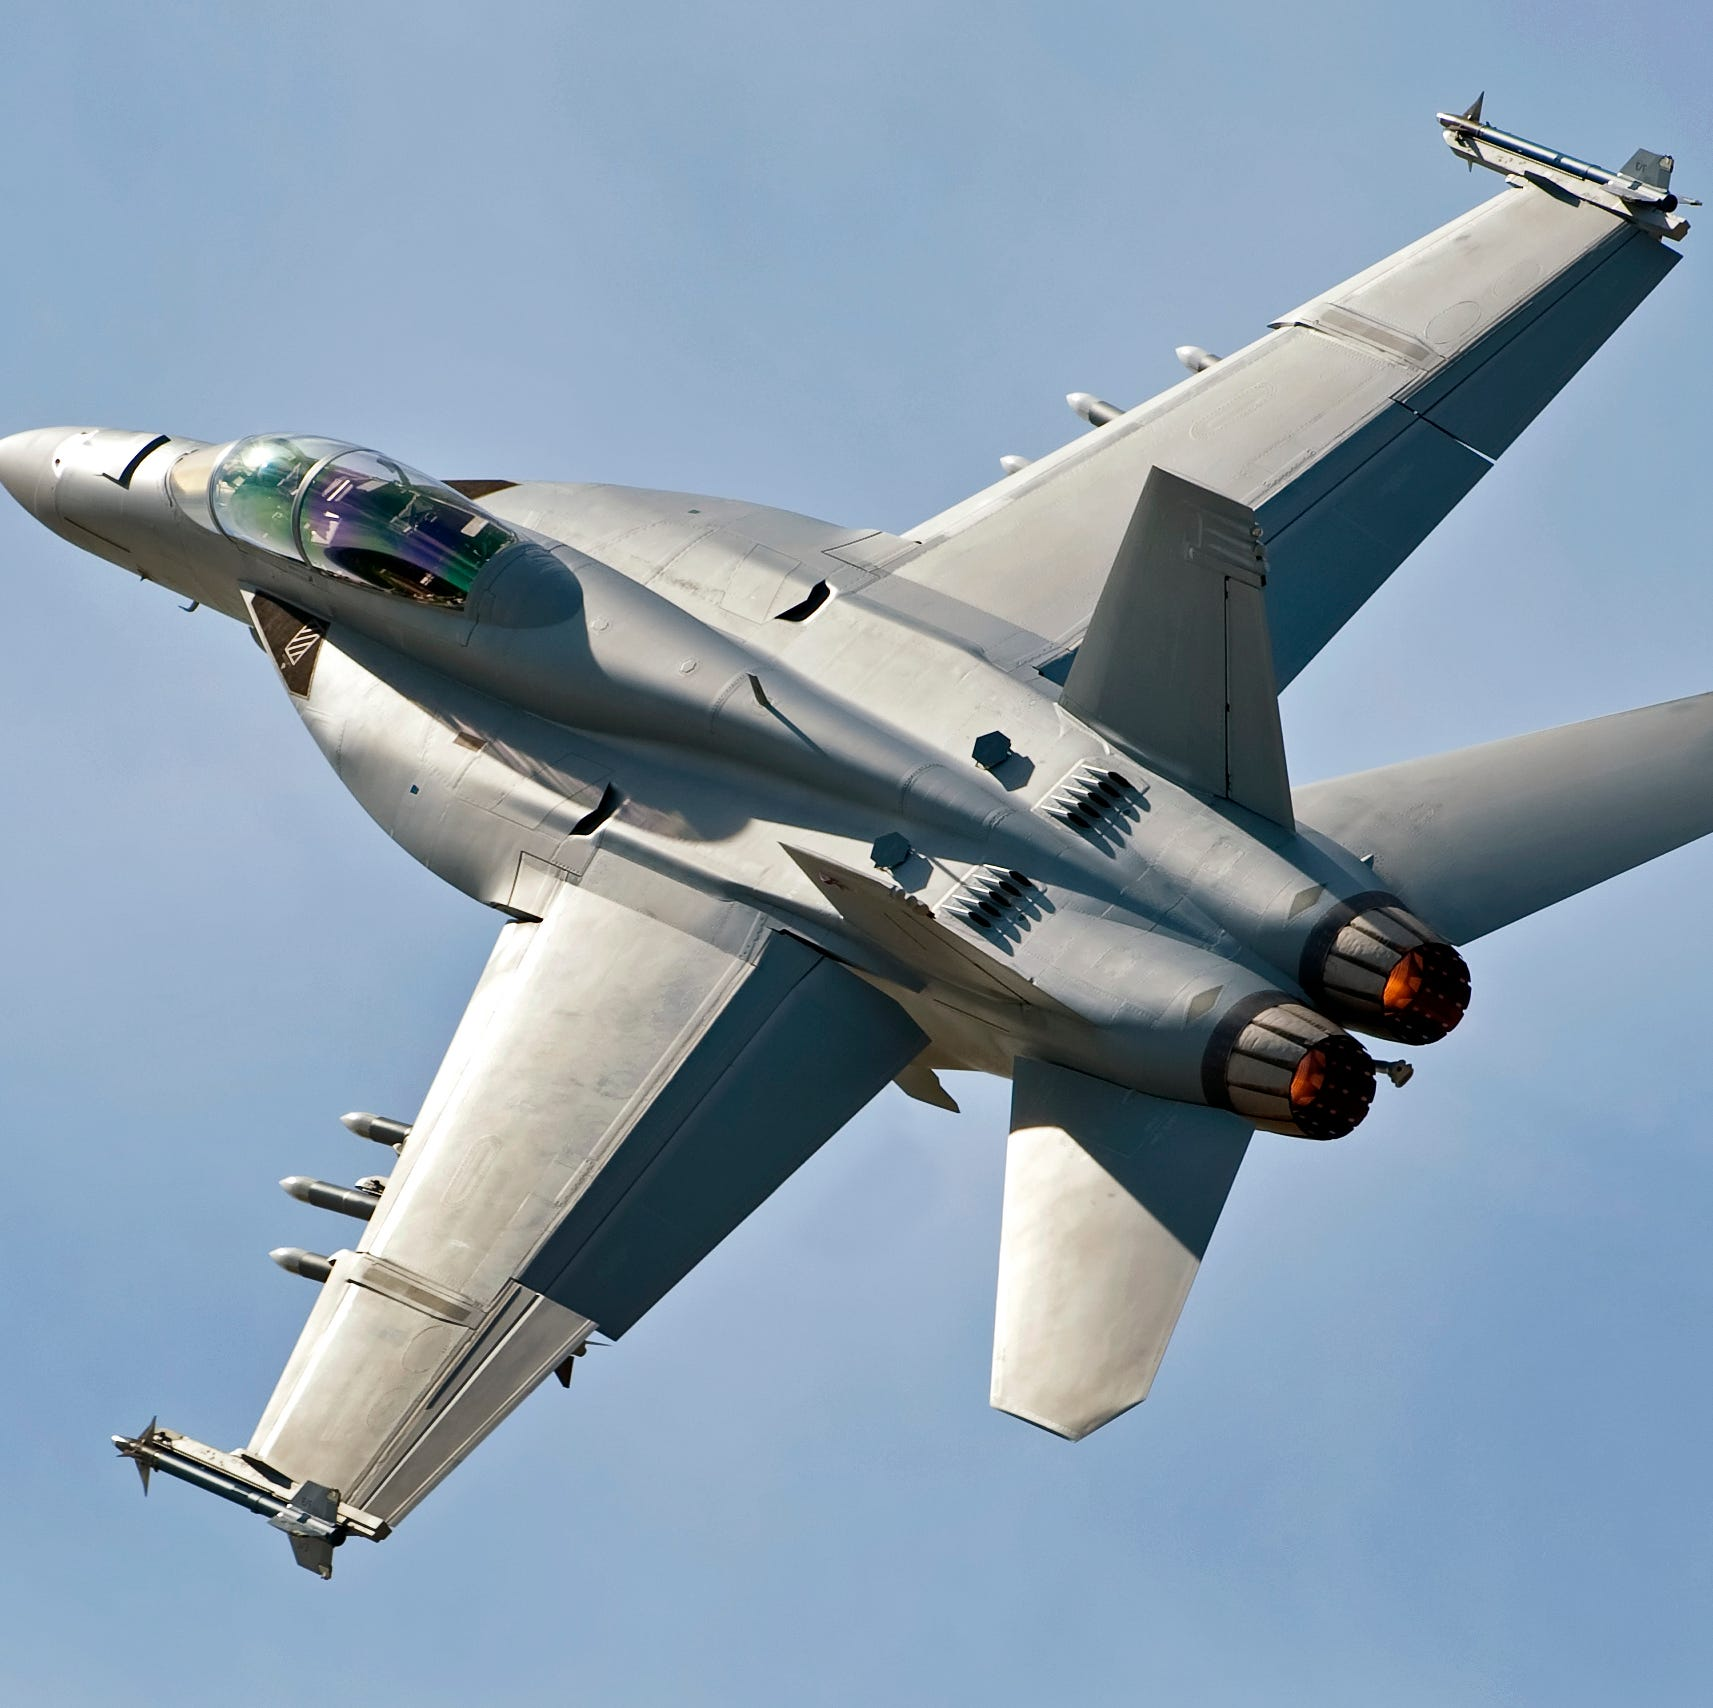 Purdue grads piloting the F18s buzzing the Ohio State football game